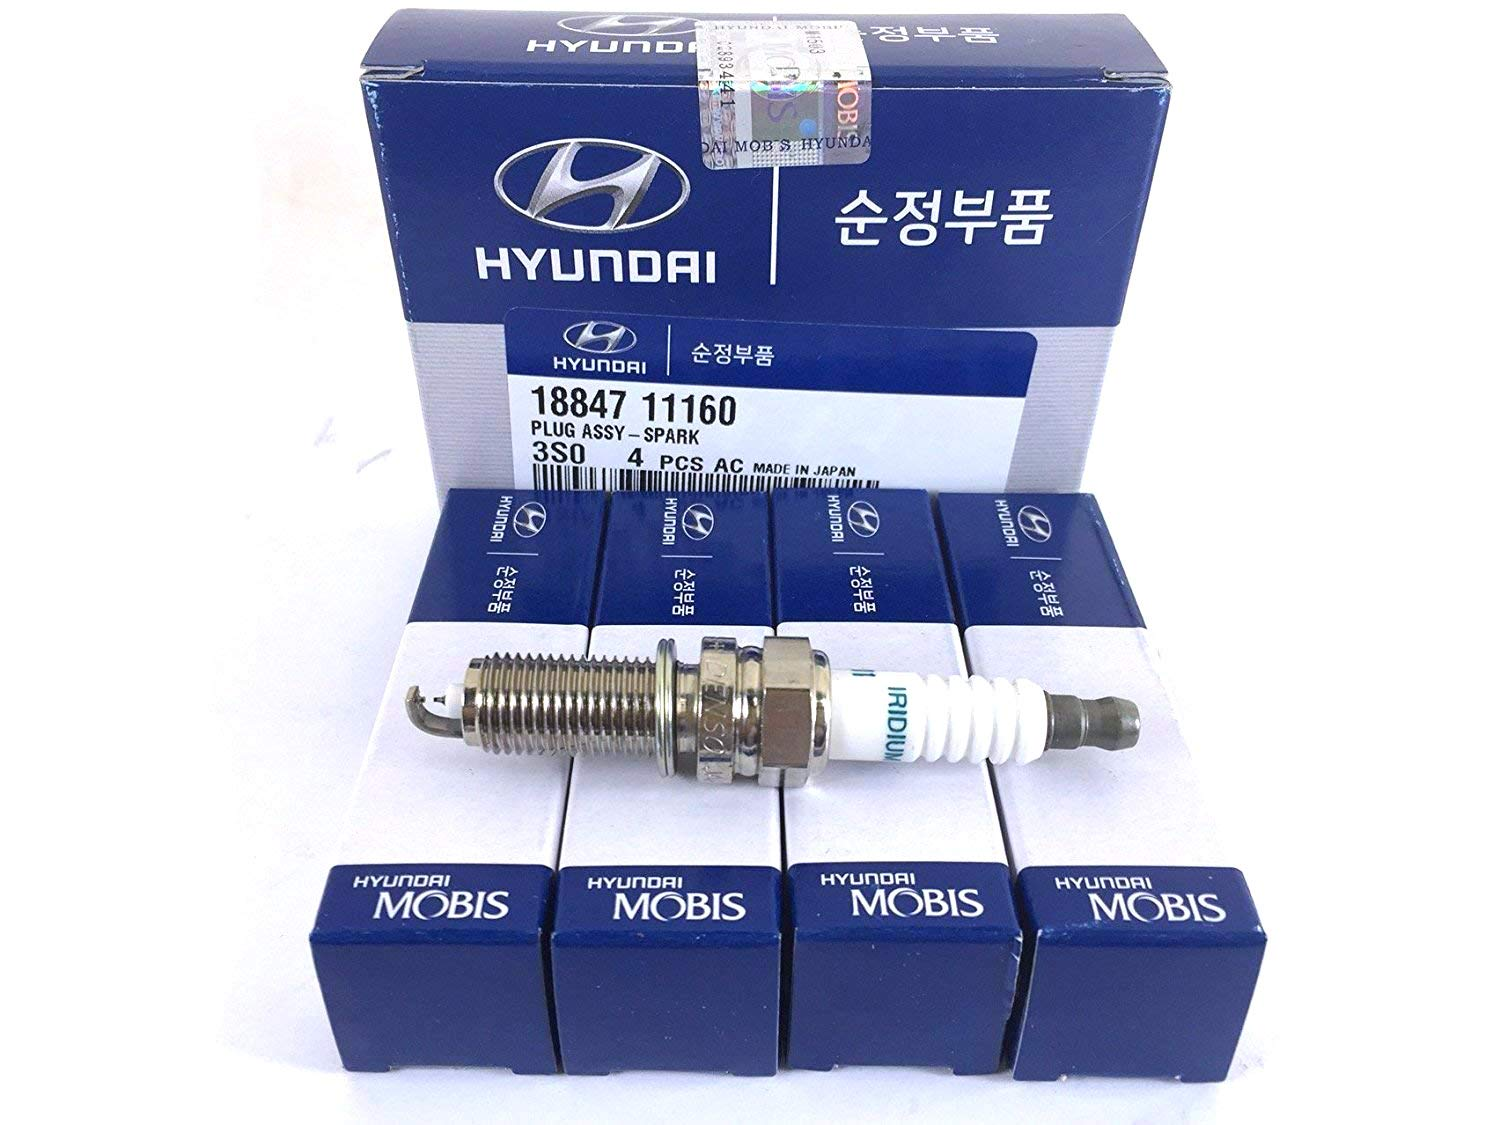 Genuine Hyundai Spark Plugs, 18847-11160, Set of 4